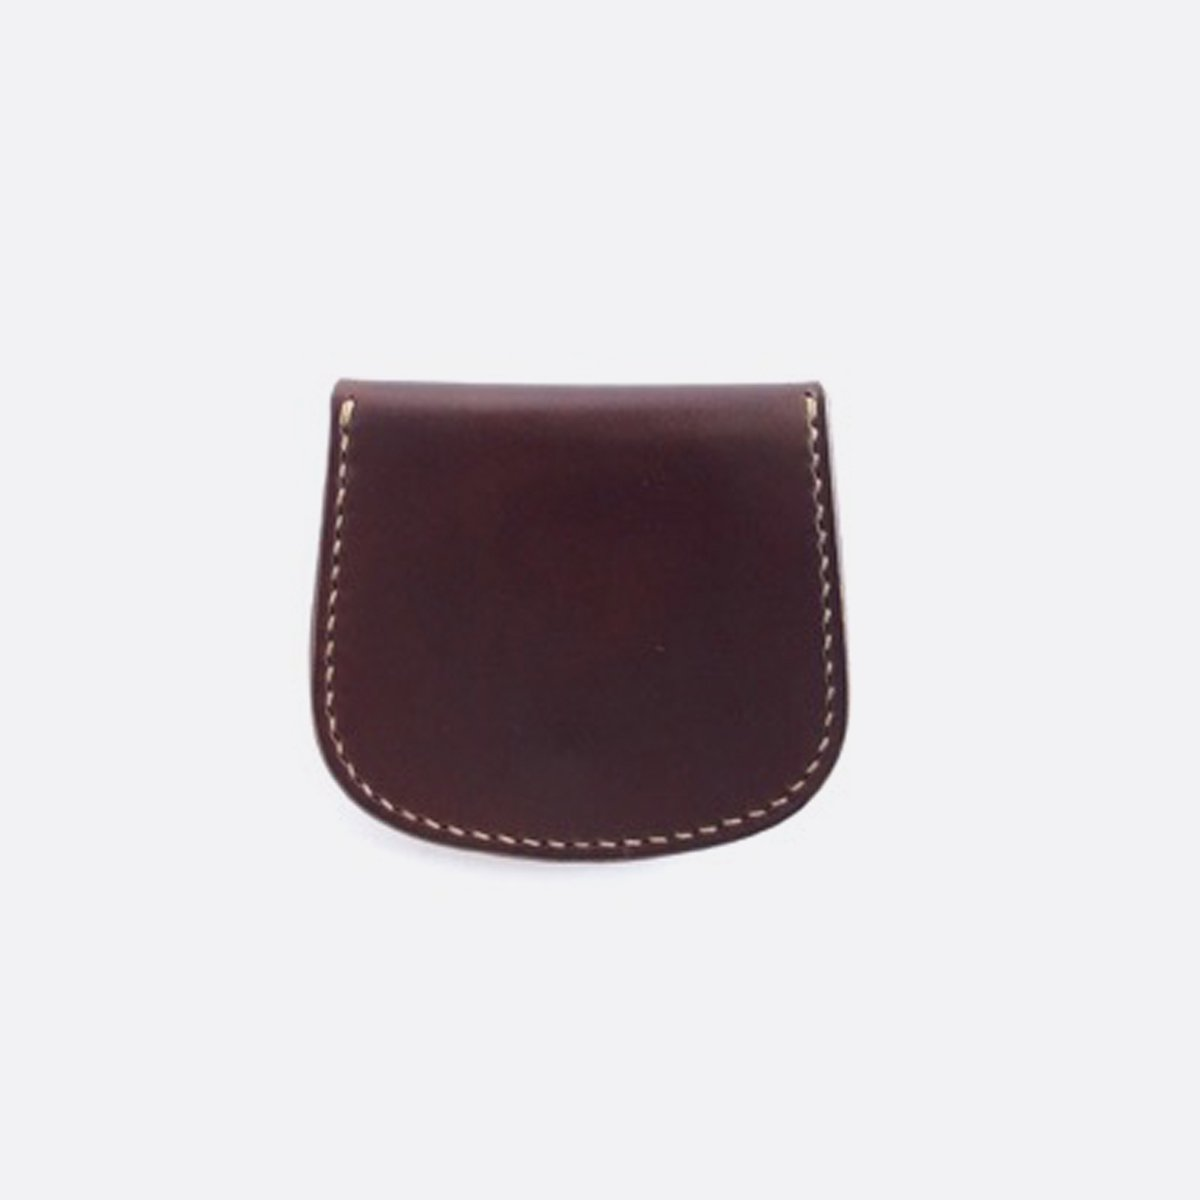 MOTO LEATHER COINCASE C1D (BROWN)2